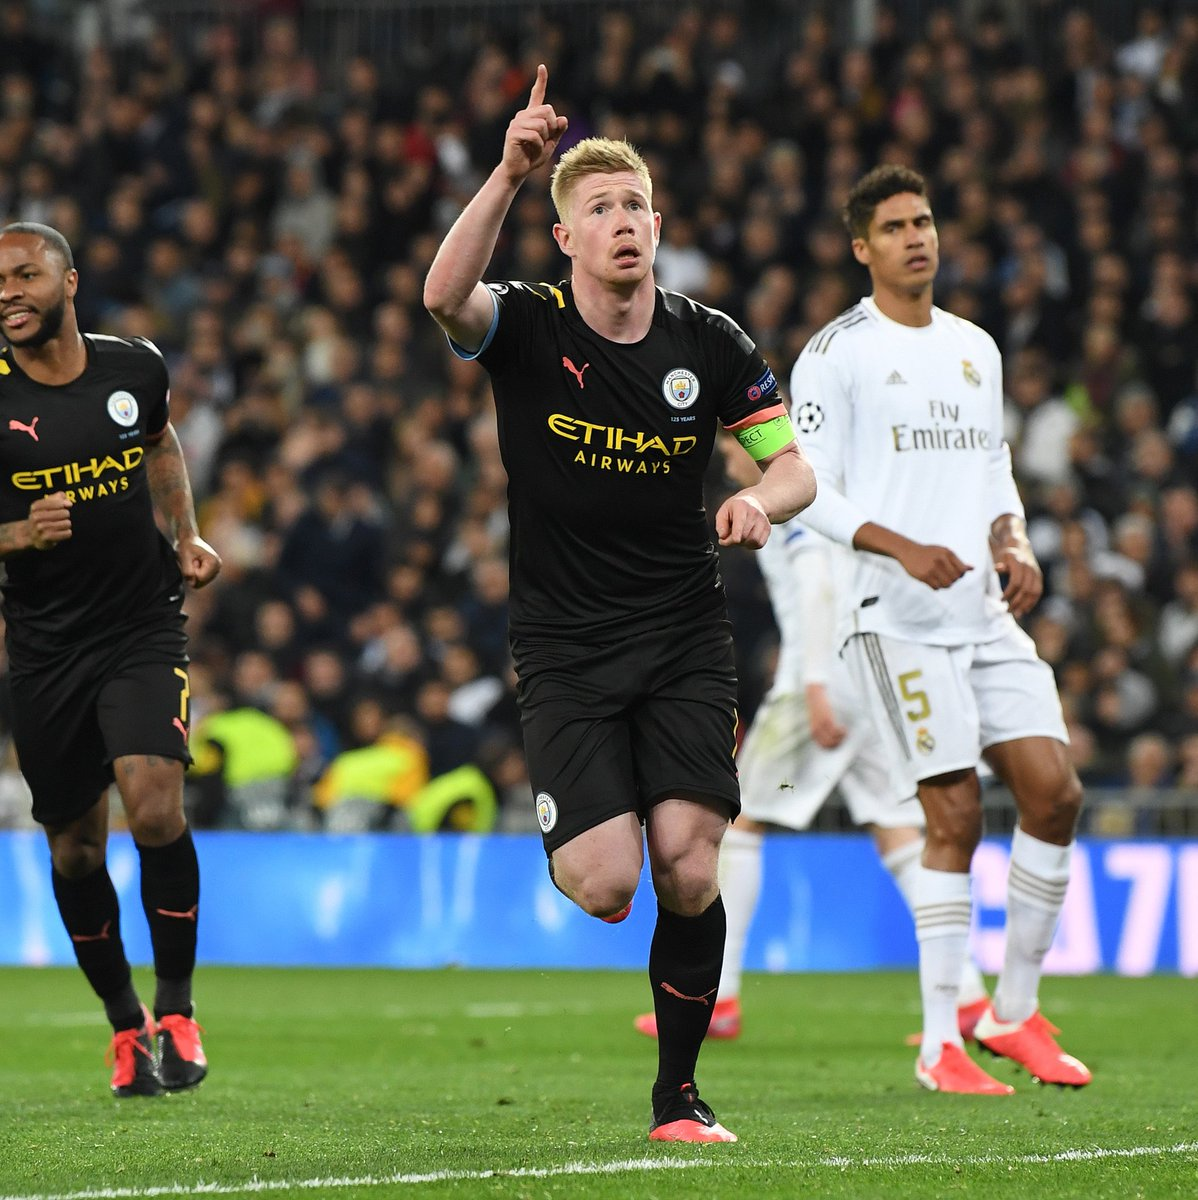 —Assist on Man City's equalizer—Scored the penalty for 2-1Kevin de Bruyne is Champions league player of the week 🏅#UCL #football